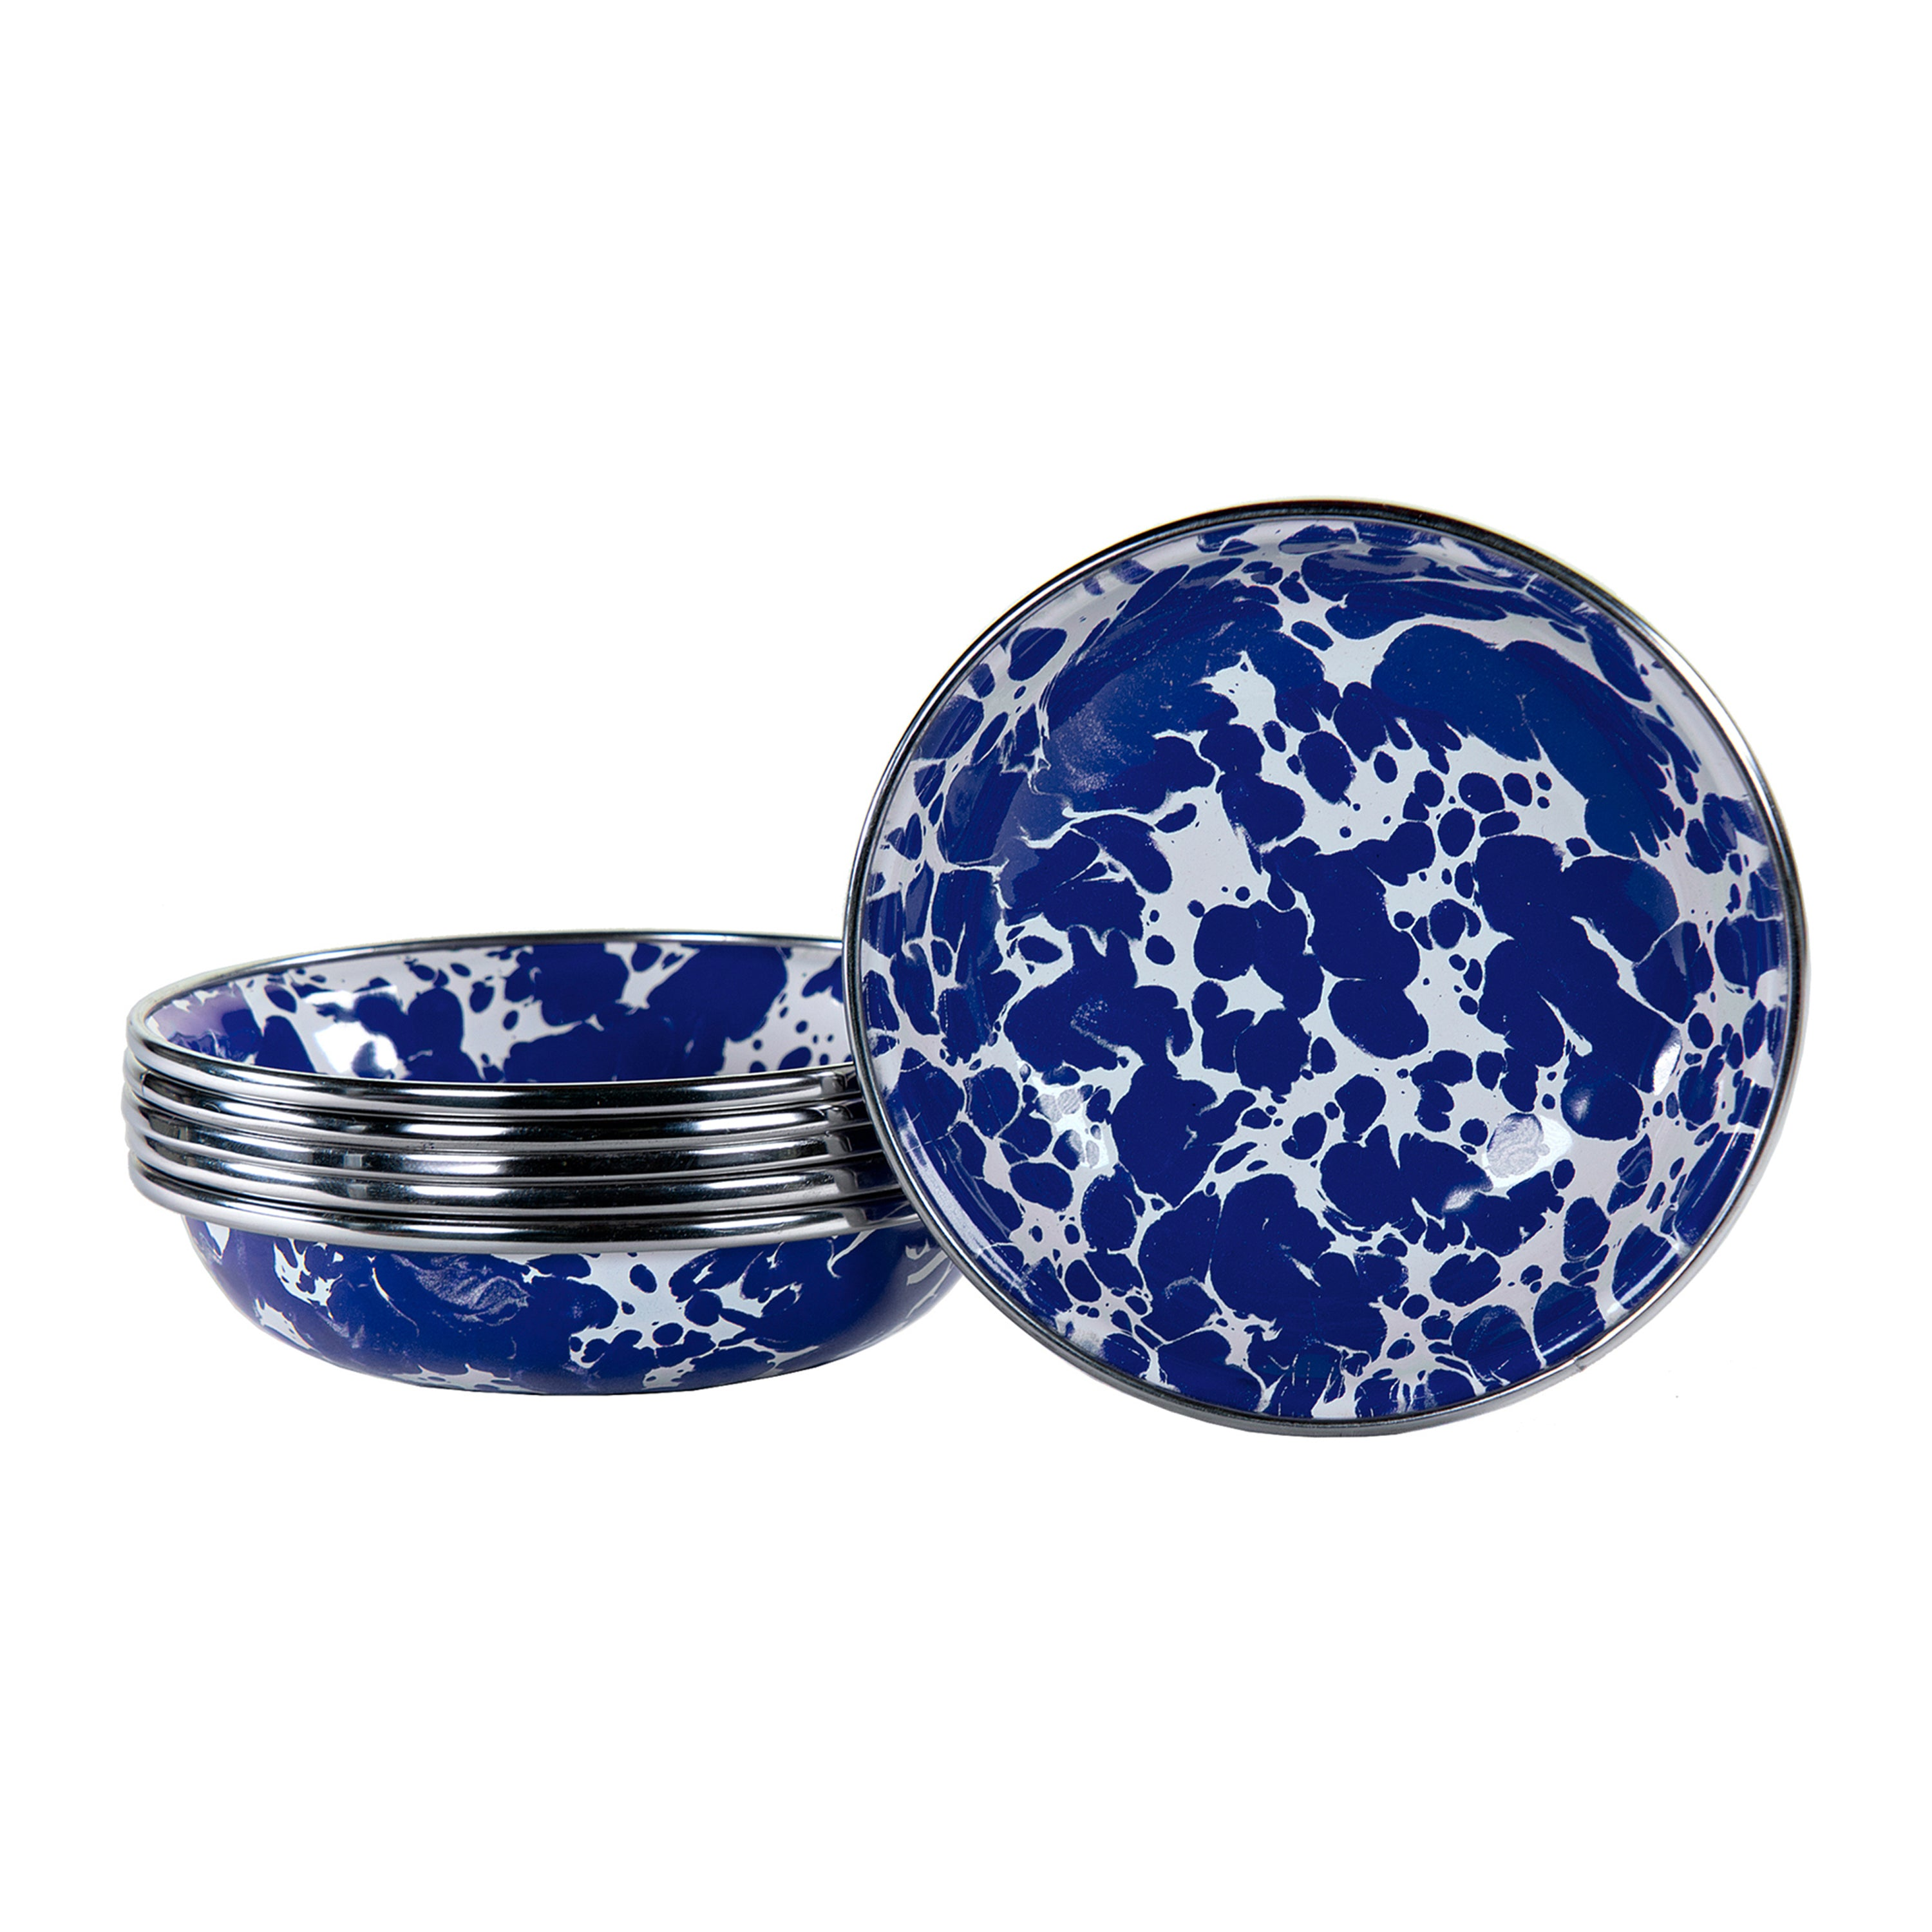 CB59S6 - Set of 6 Cobalt Swirl Tasting Dishes Image 1